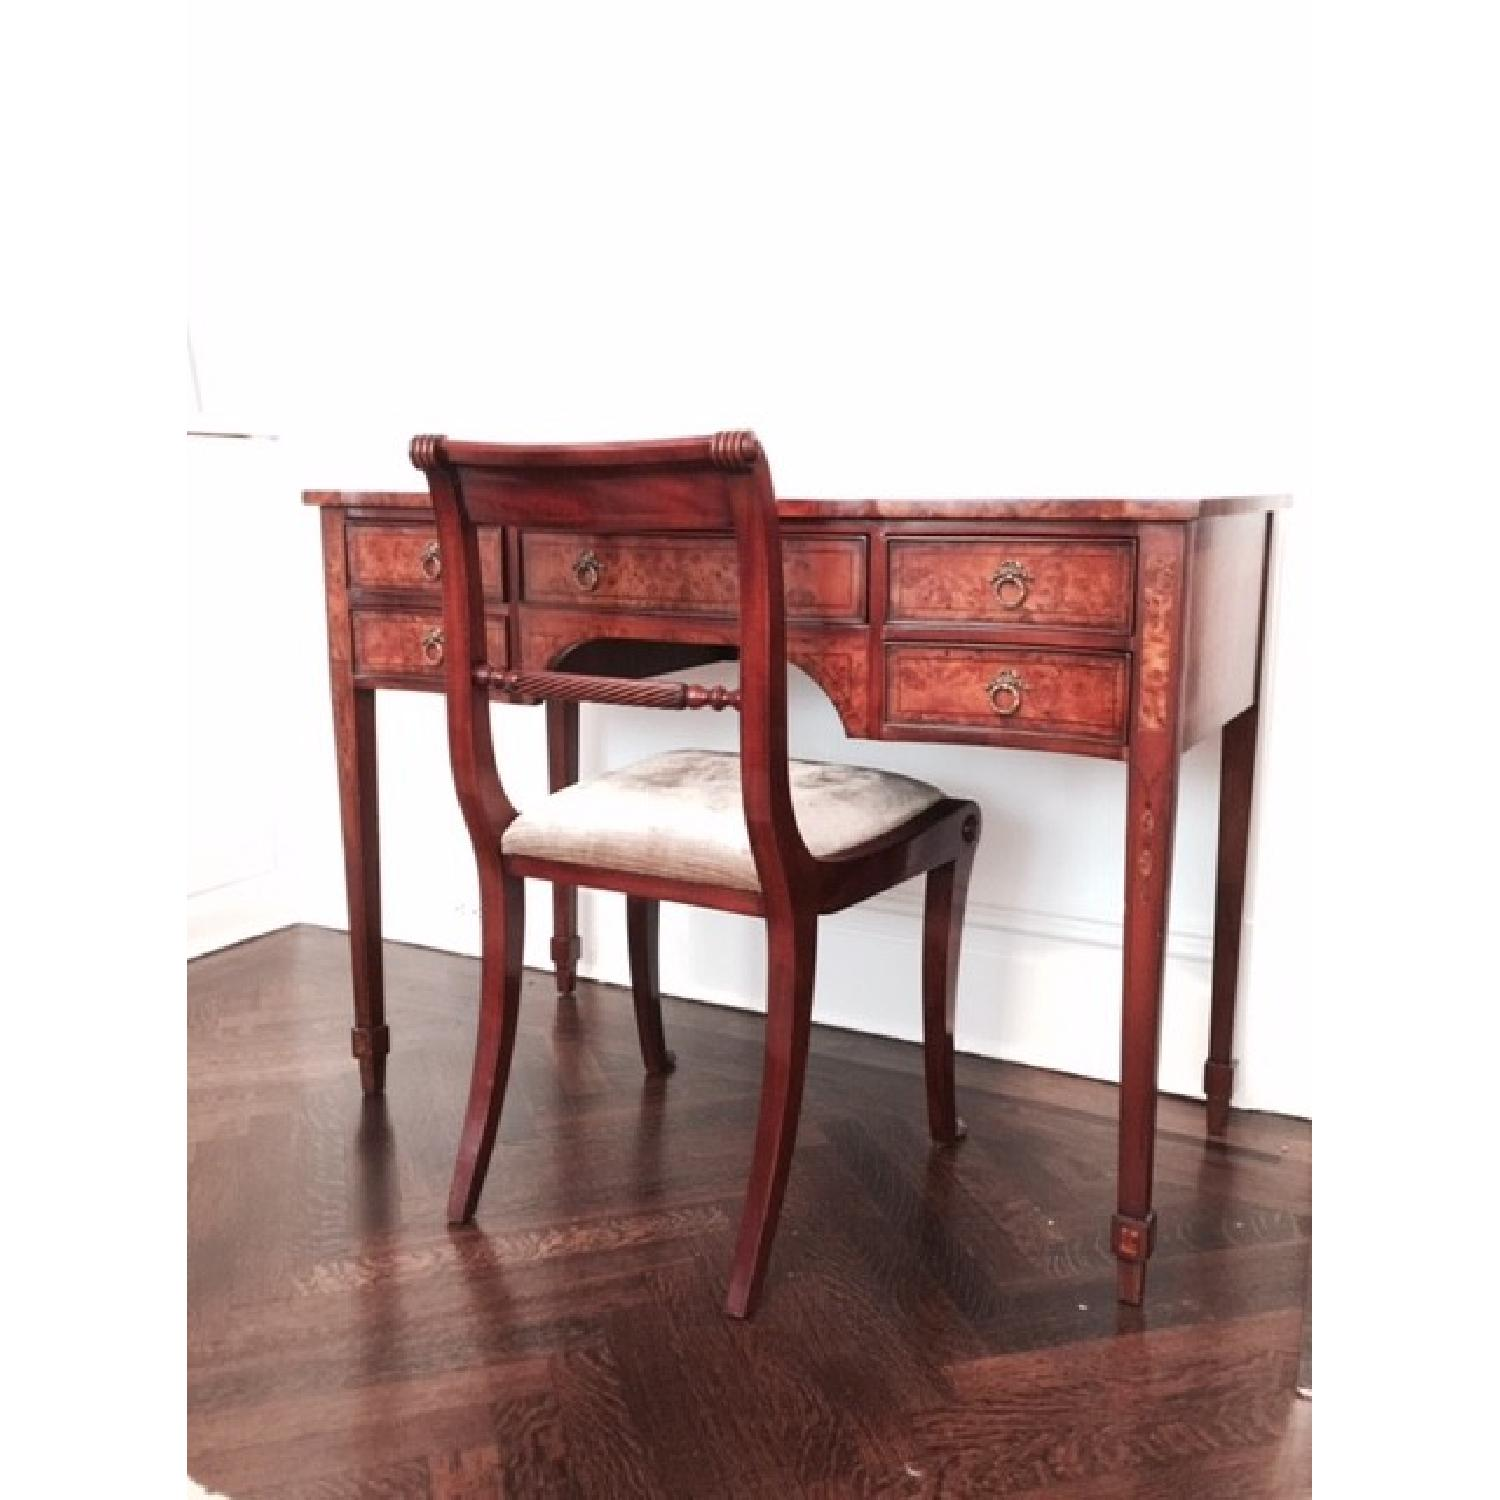 Two-Tone Wood Desk/Vanity and Chair - image-1